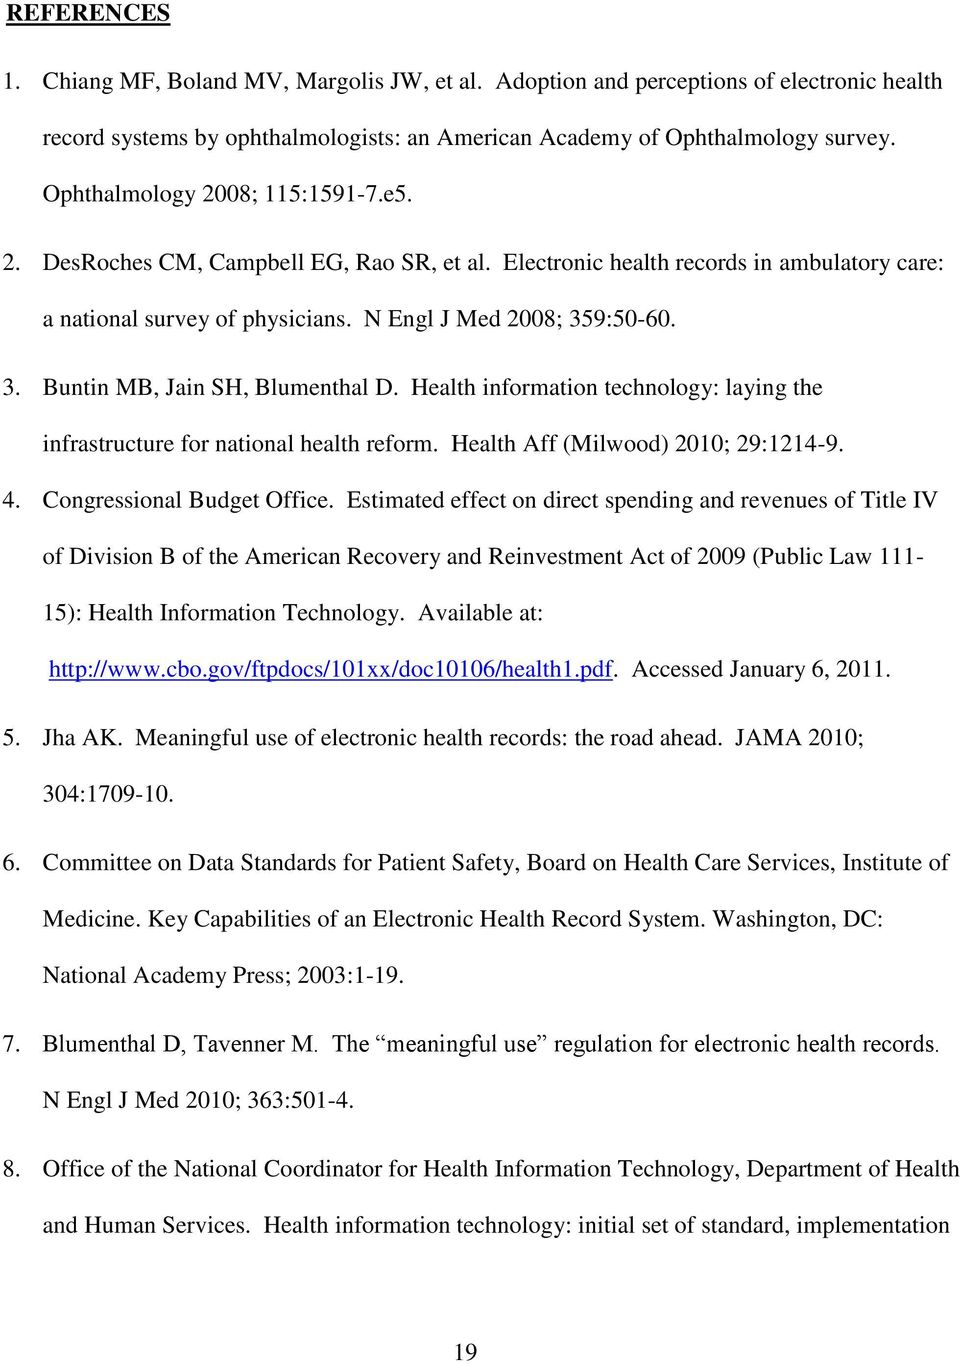 9:50-60. 3. Buntin MB, Jain SH, Blumenthal D. Health information technology: laying the infrastructure for national health reform. Health Aff (Milwood) 2010; 29:1214-9. 4. Congressional Budget Office.